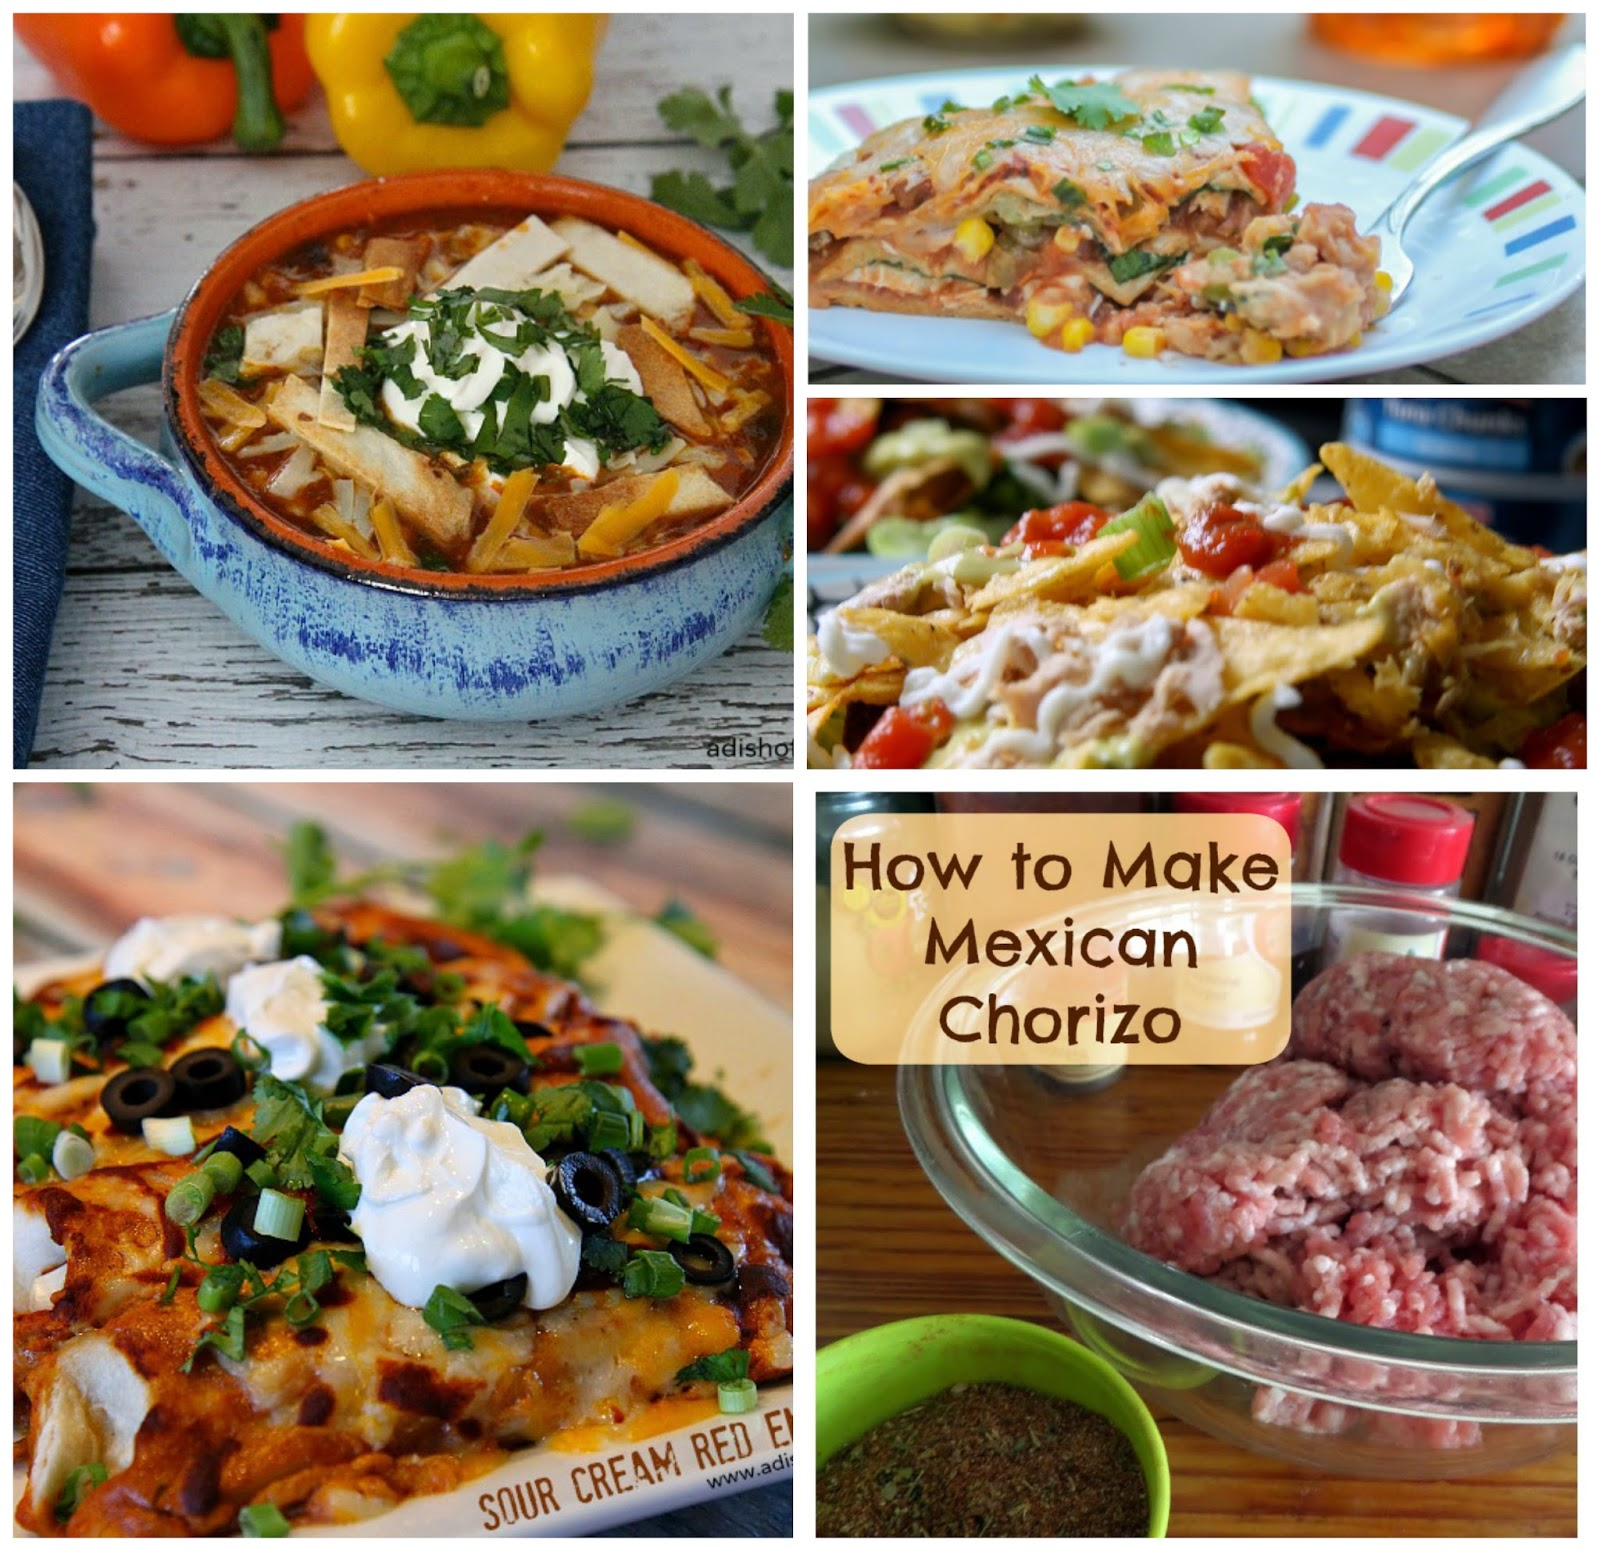 5 cinco de mayo recipes from anyonita-nibble.co.uk